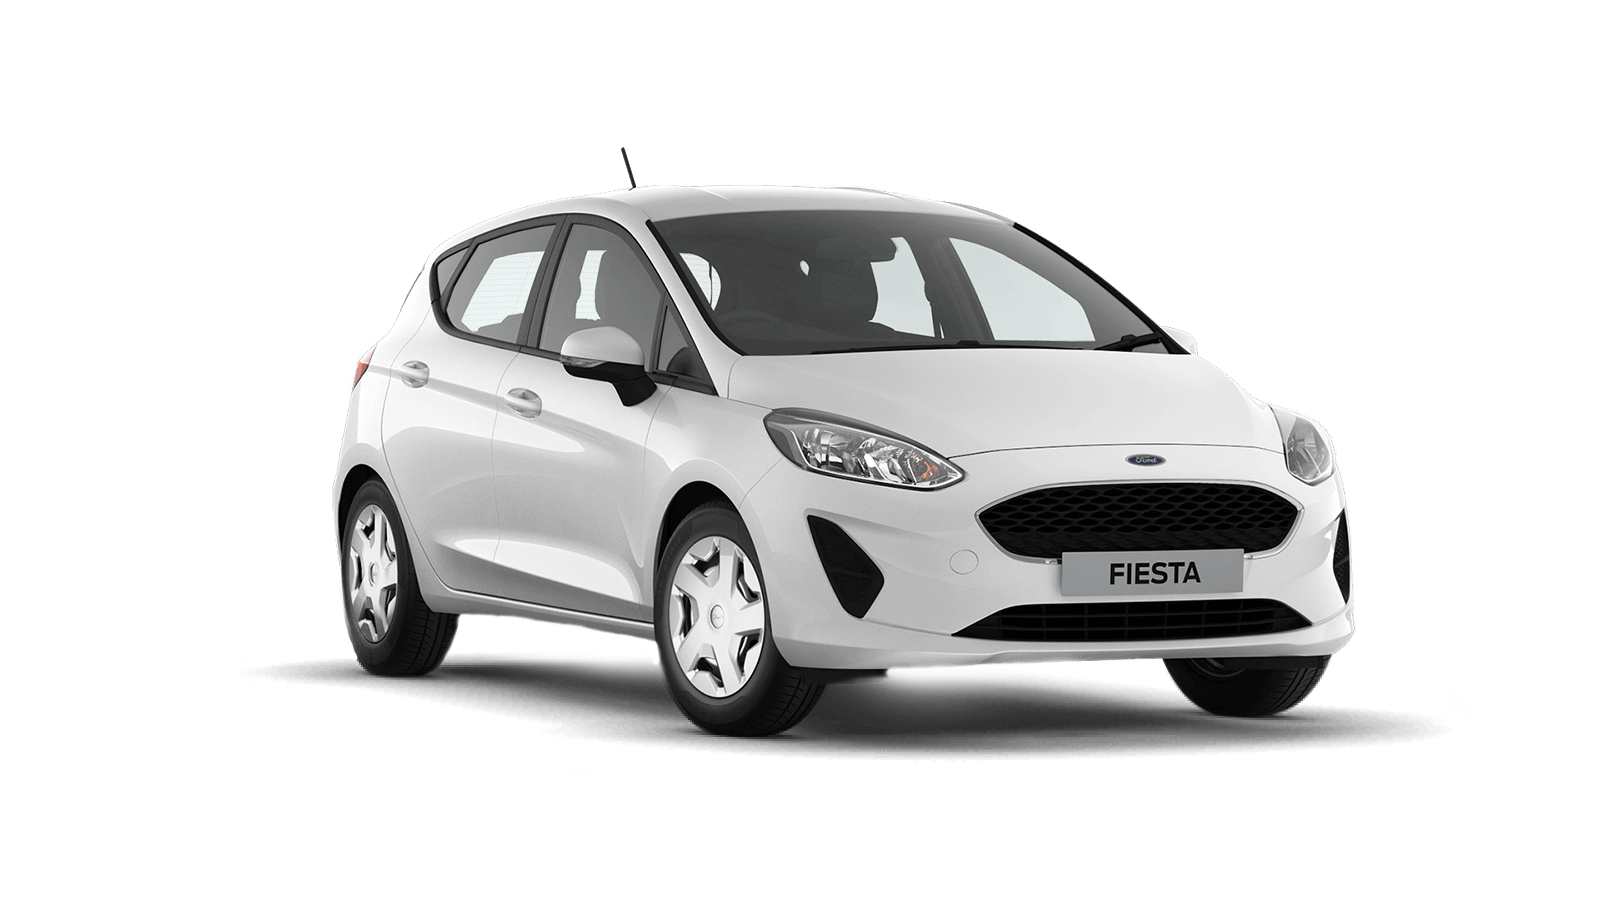 Drive away in a 2019 Fiesta exclusively at Barlo Motors Clonmel and Thurles